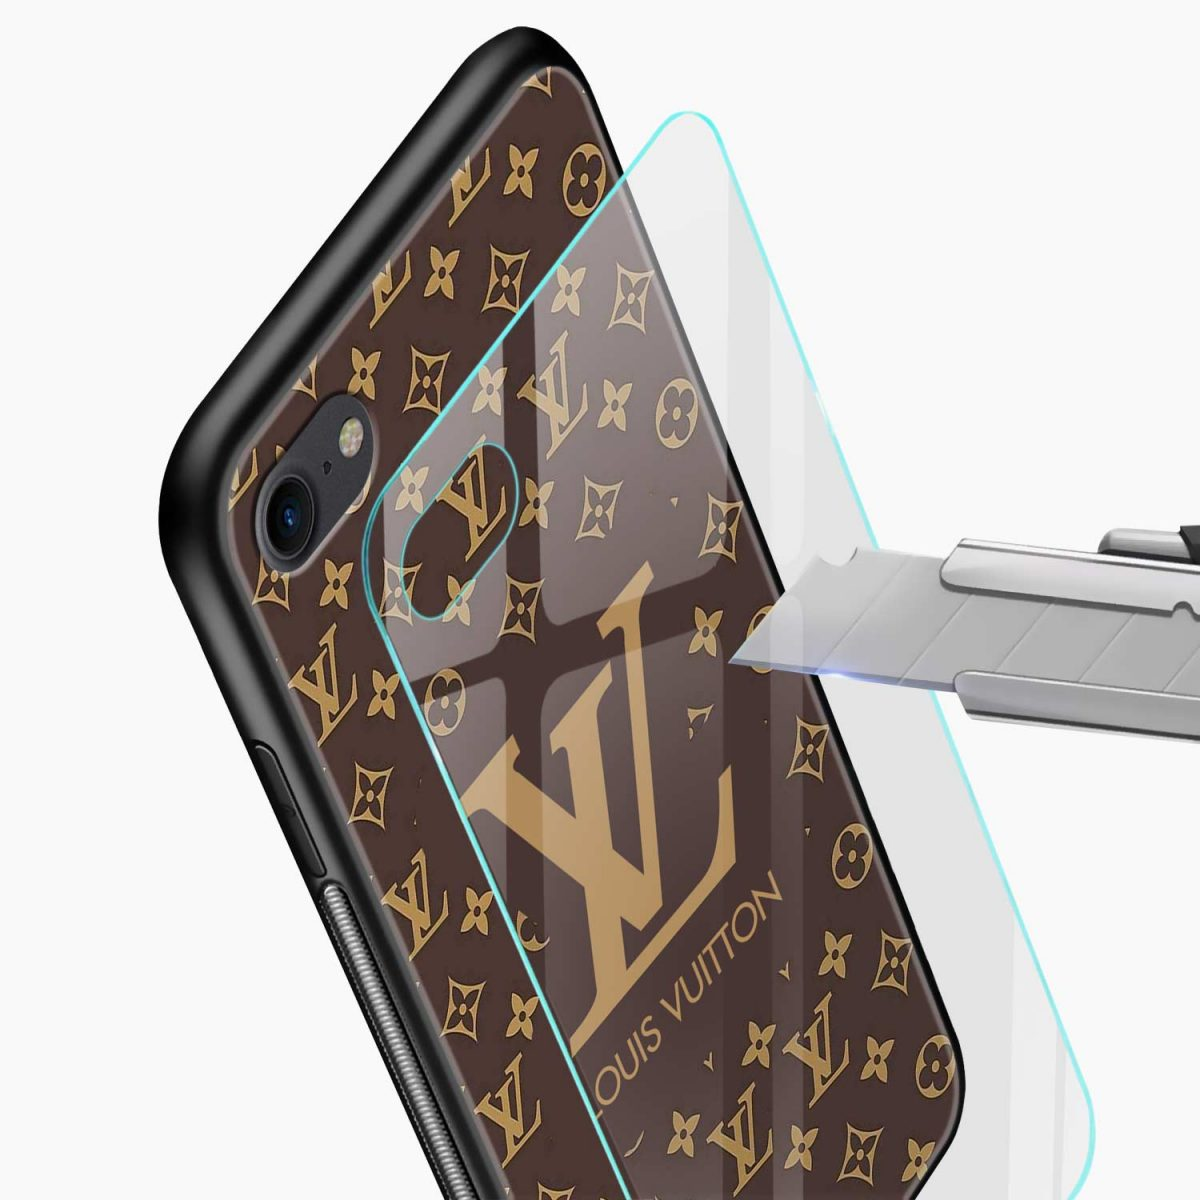 louis vuitton glass view apple iphone 6 7 8 se back cover